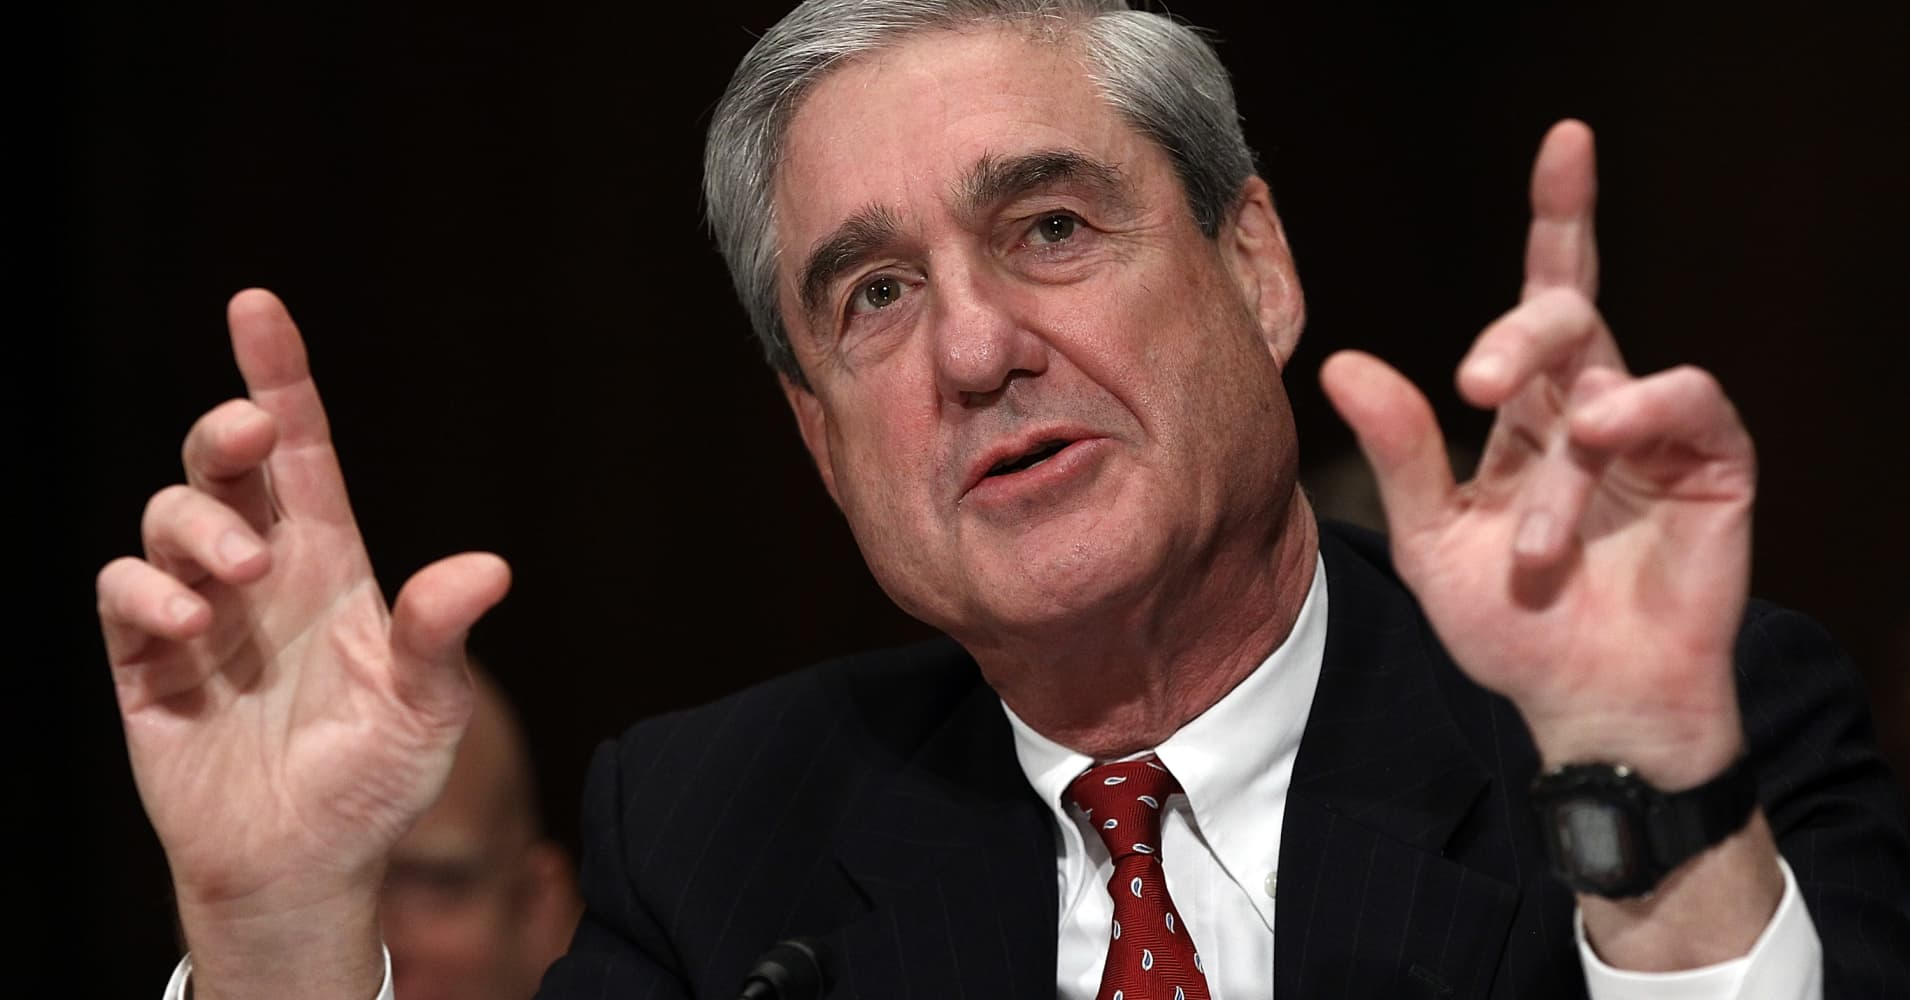 Mueller warns that election, politics meddling by foreigners is still happening